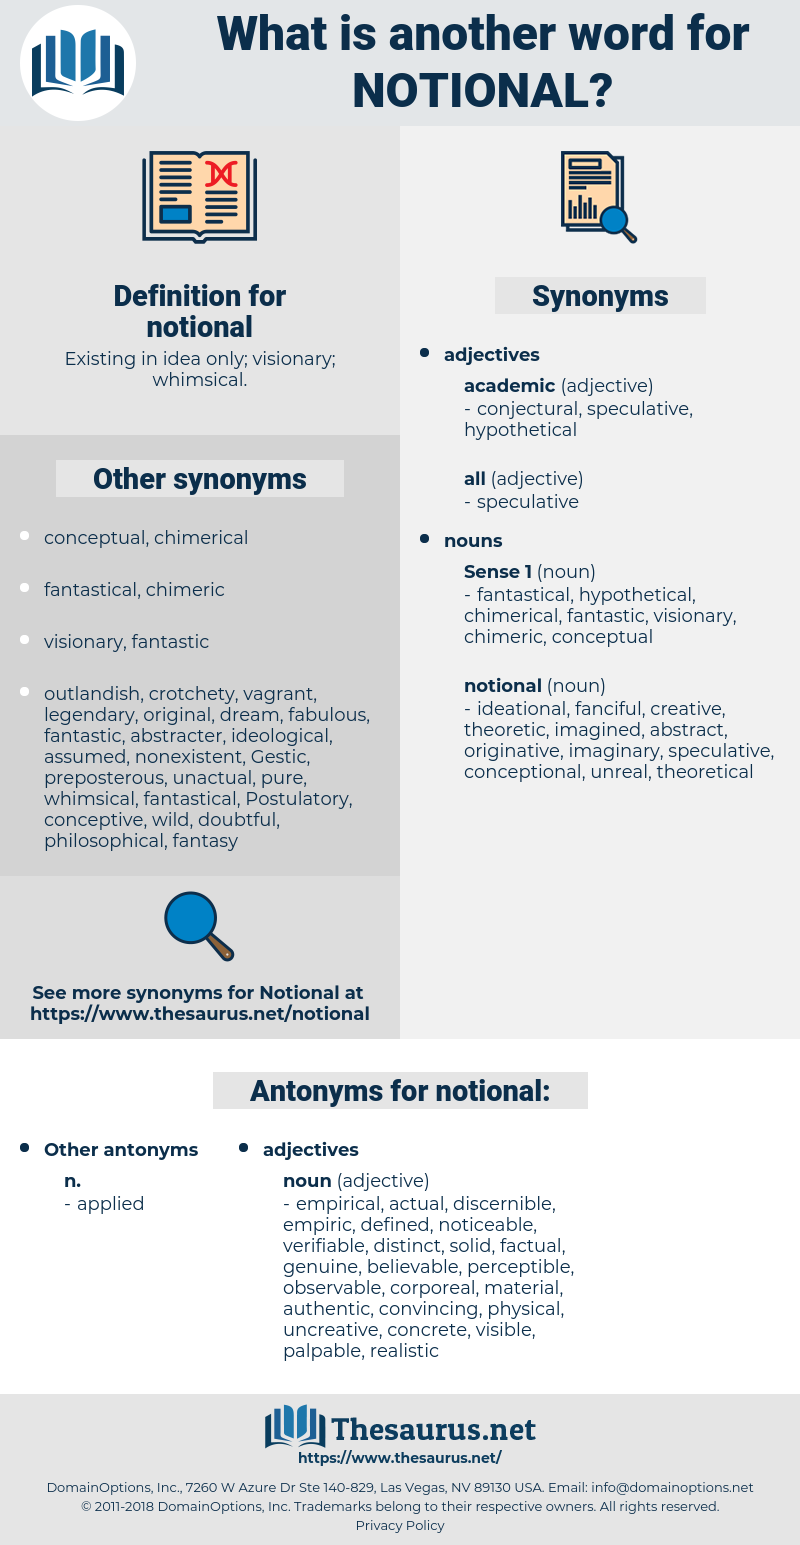 notional, synonym notional, another word for notional, words like notional, thesaurus notional